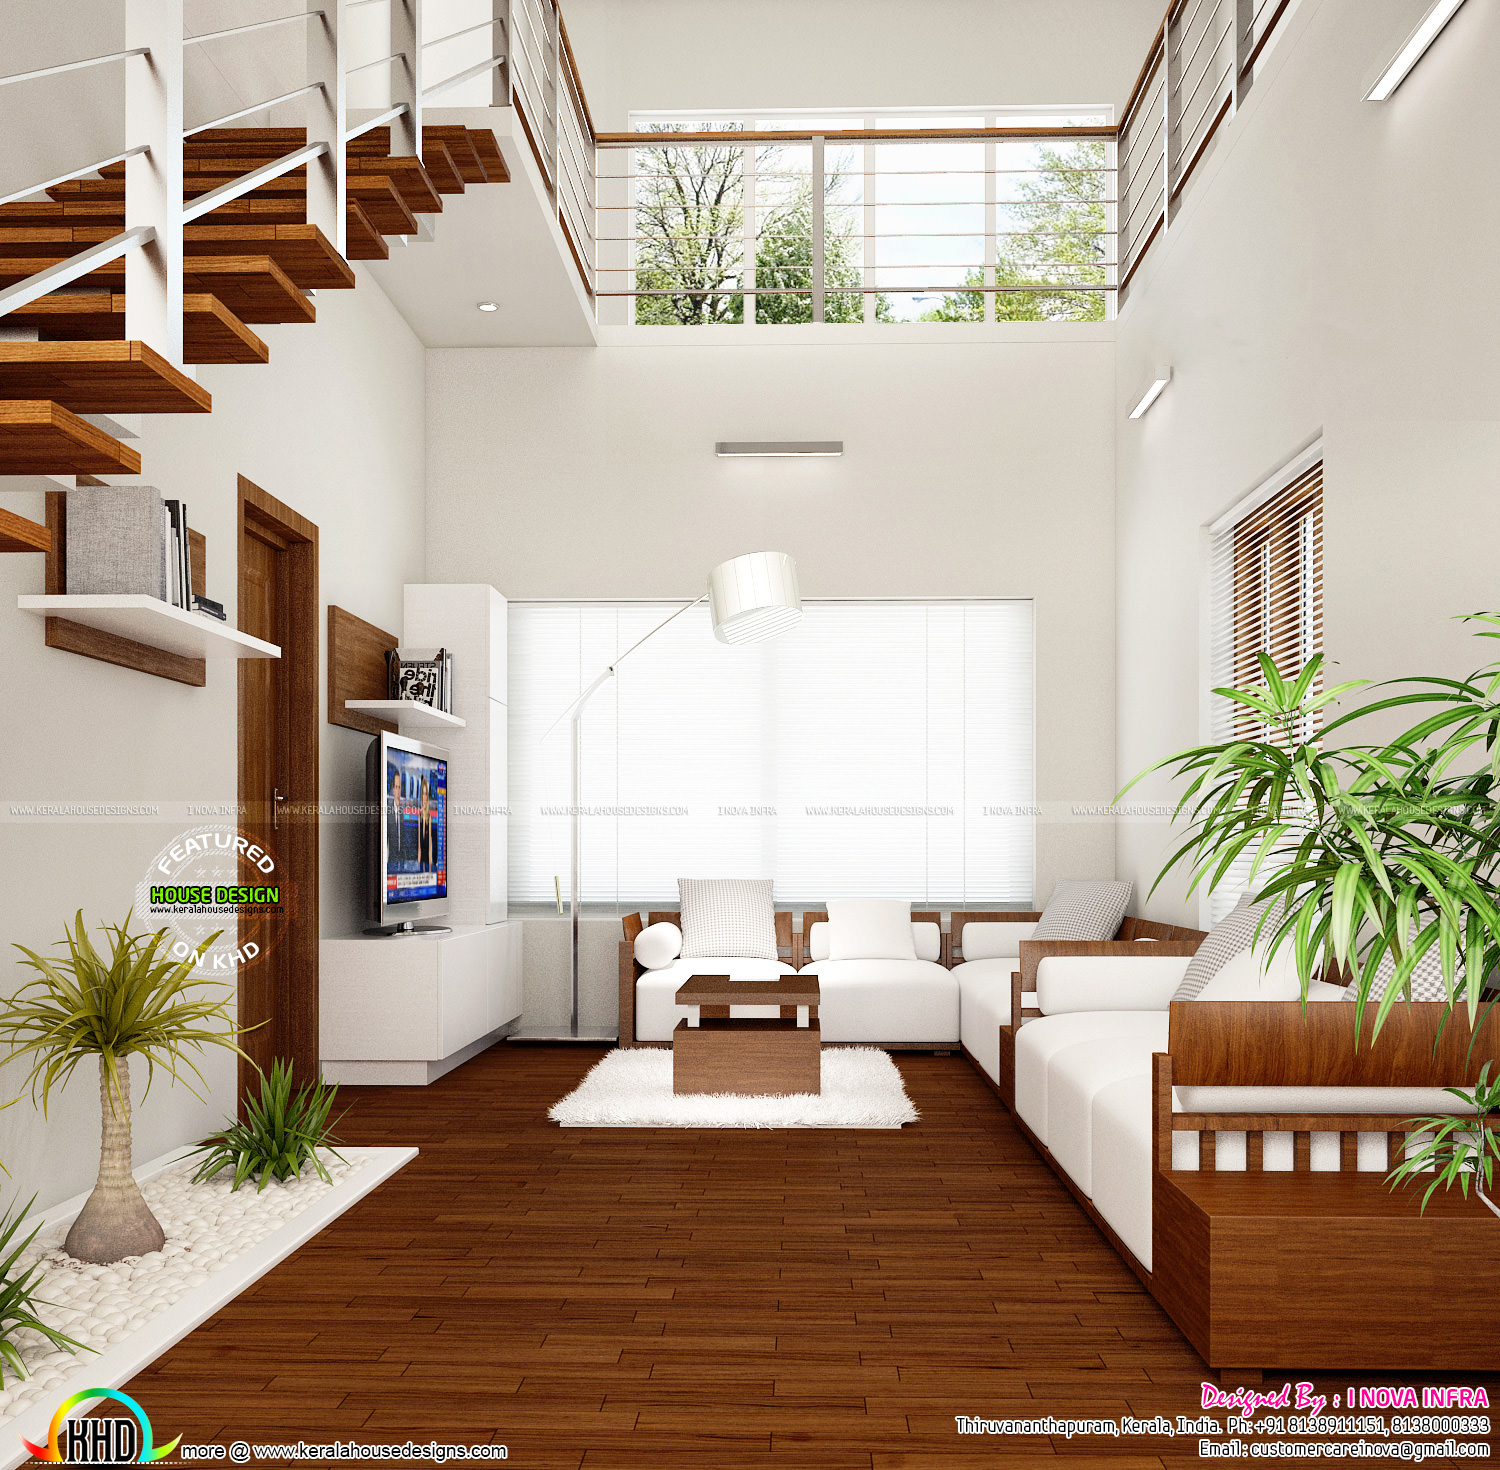 New classical interior works at trivandrum home design House model interior design